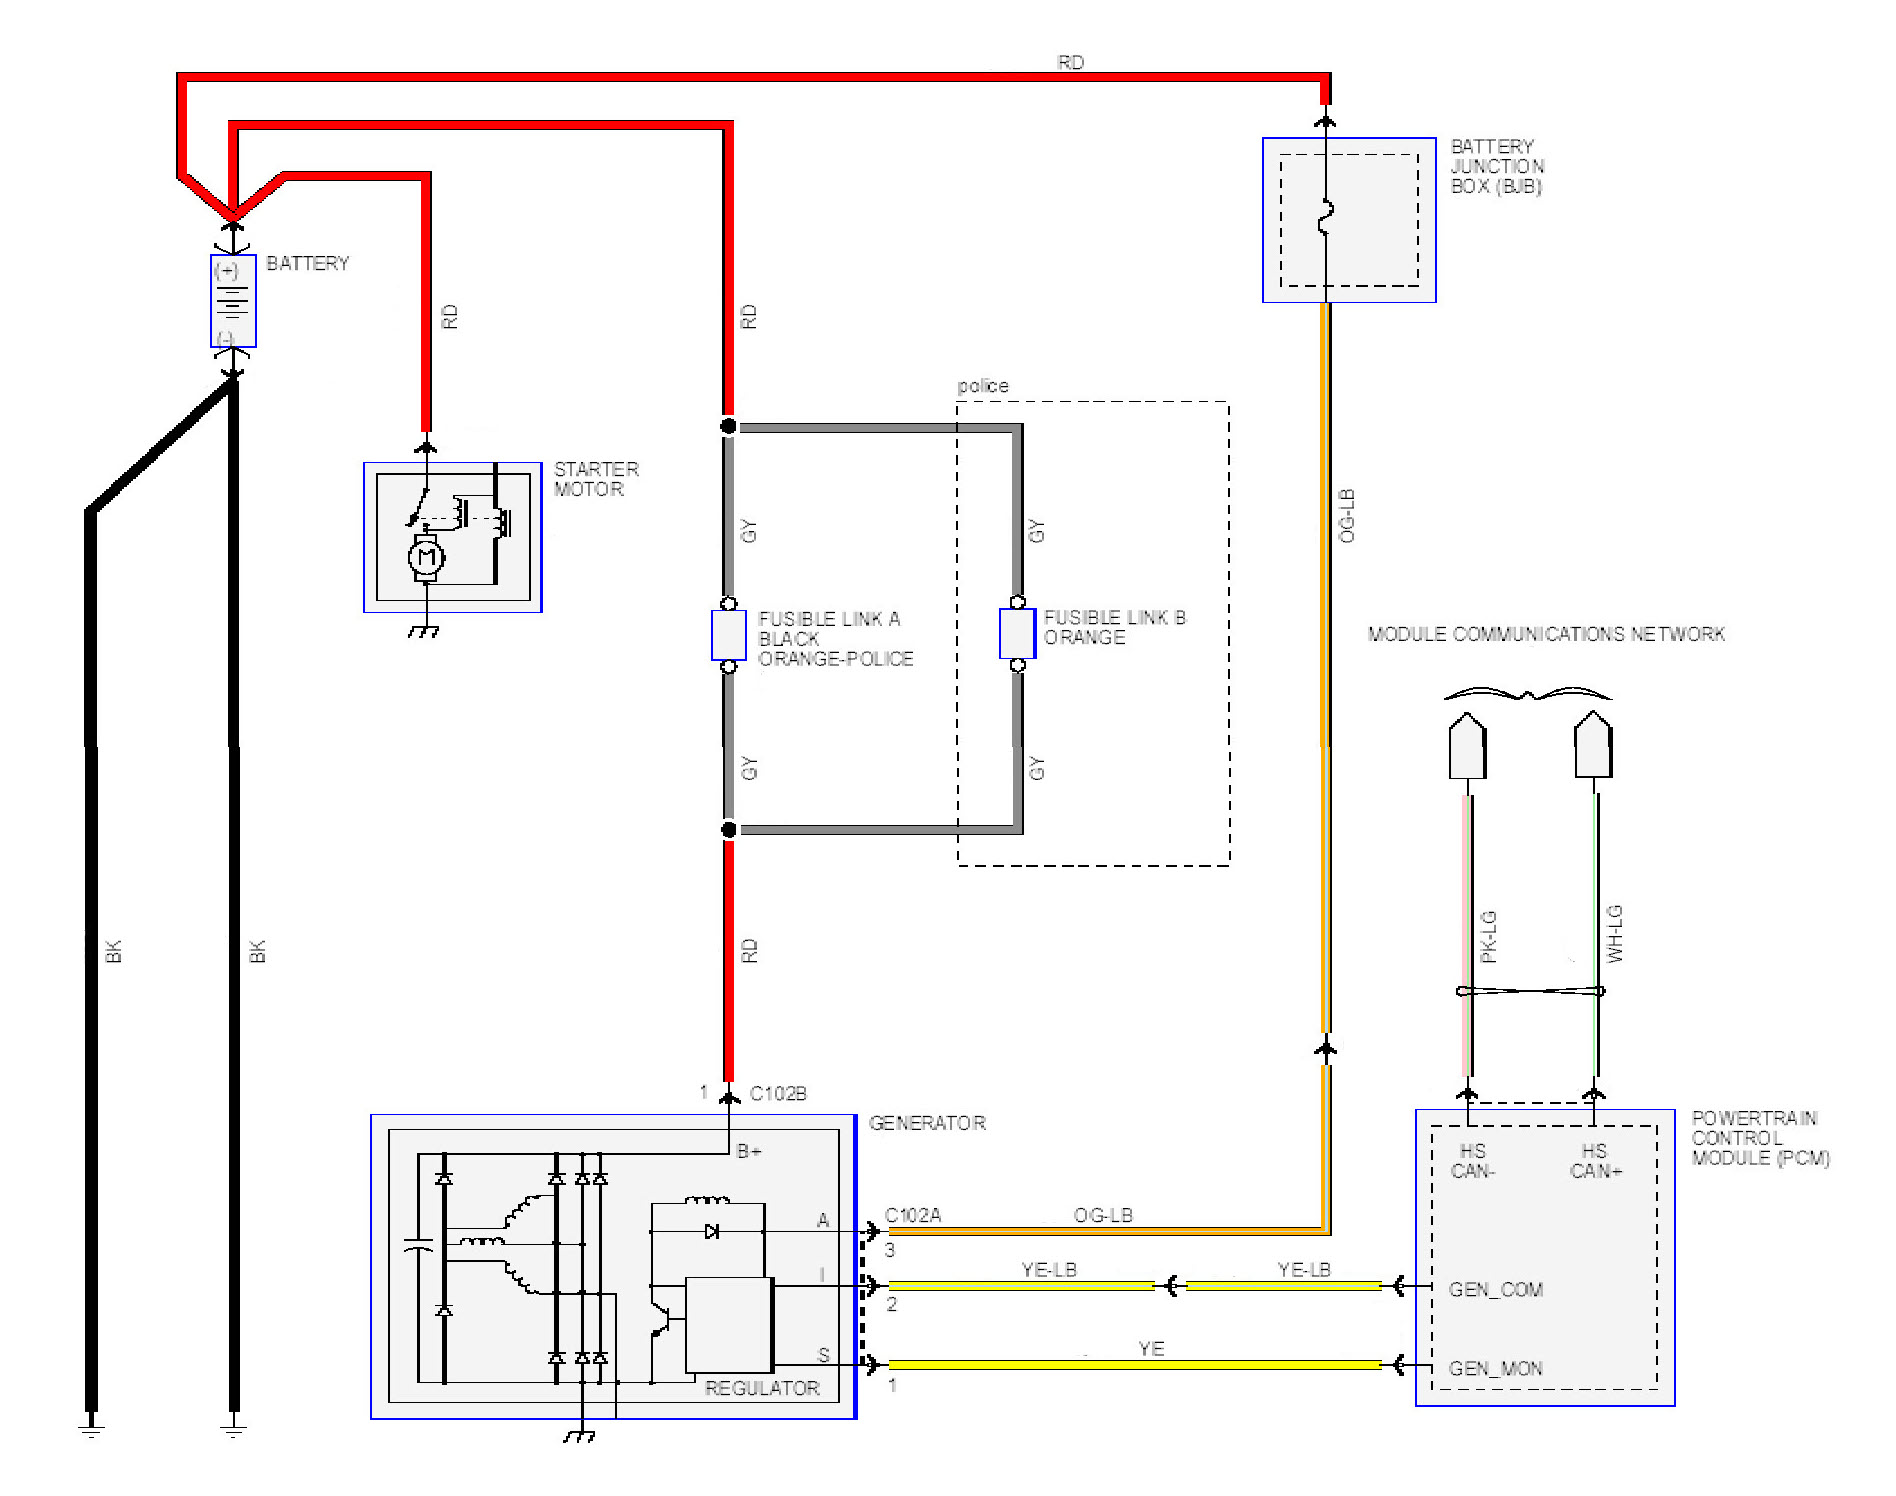 10crownviccharge ford crown victoria alternator wiring diagrams 1999 F150 Radio Wiring Diagram at pacquiaovsvargaslive.co